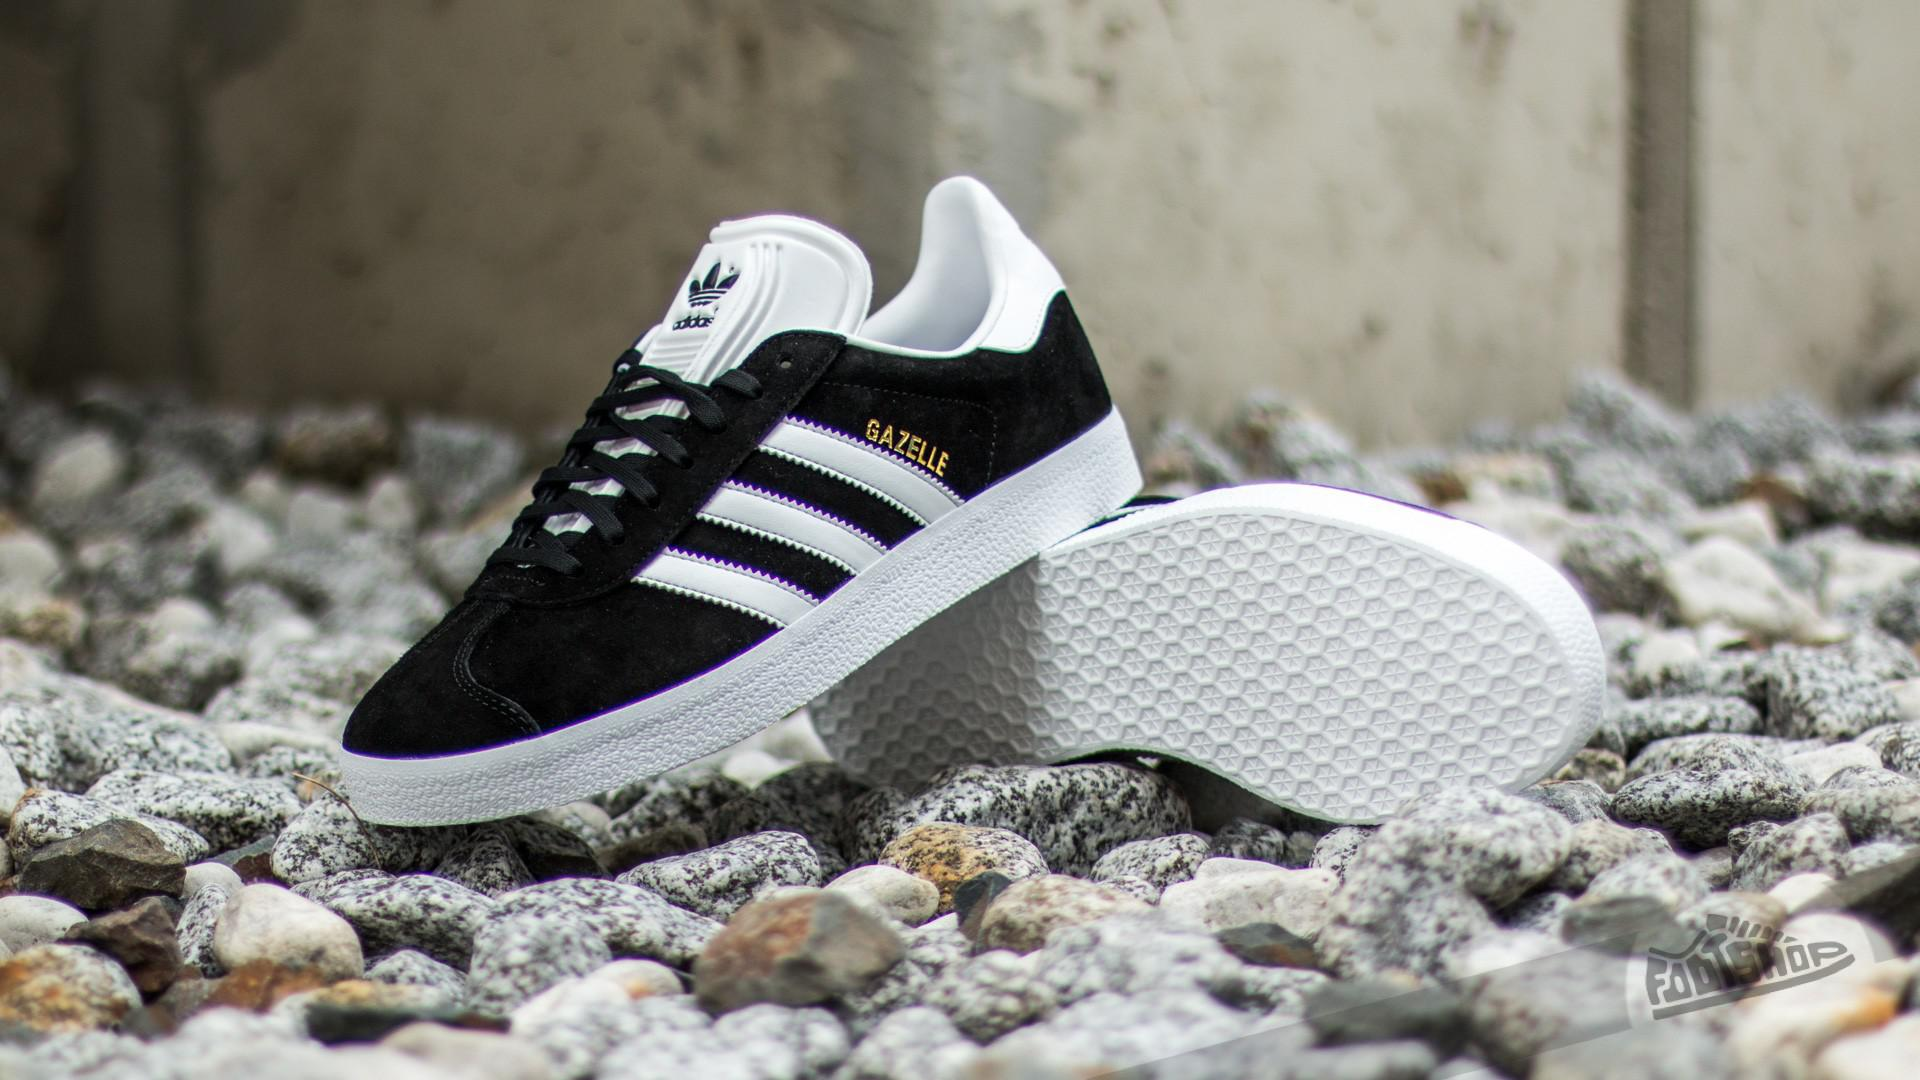 low priced e1a7d c923a Footshop - Multicolor Adidas Gazelle Core Black White Gold Metalic for  Men - Lyst. View fullscreen